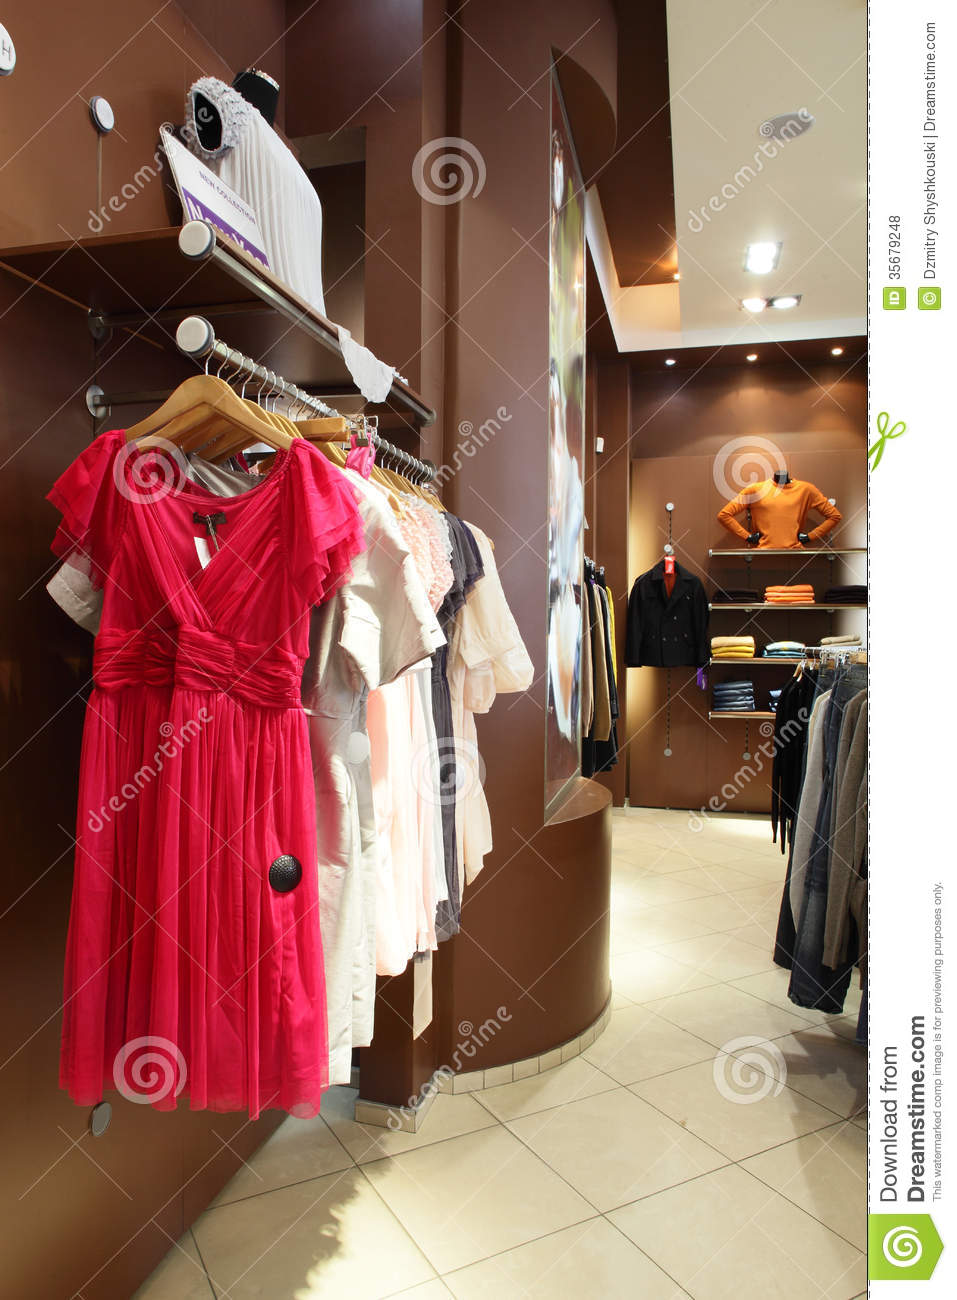 Stock Photo - european clothing store interior in modern mall